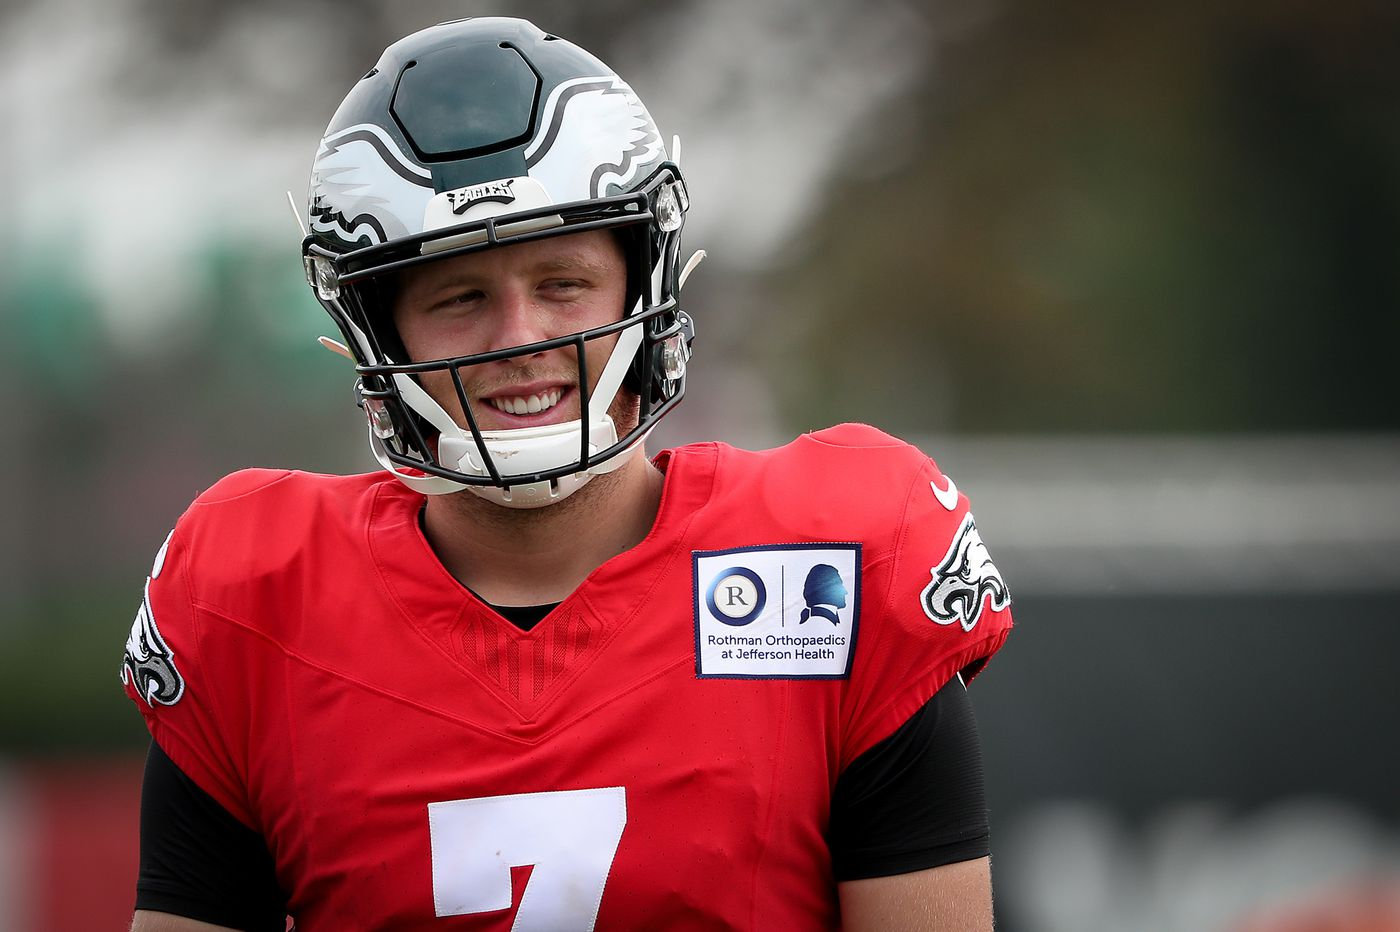 Can Nate Sudfeld fill Nick Foles' shoes as Carson Wentz's backup? His first test is here.